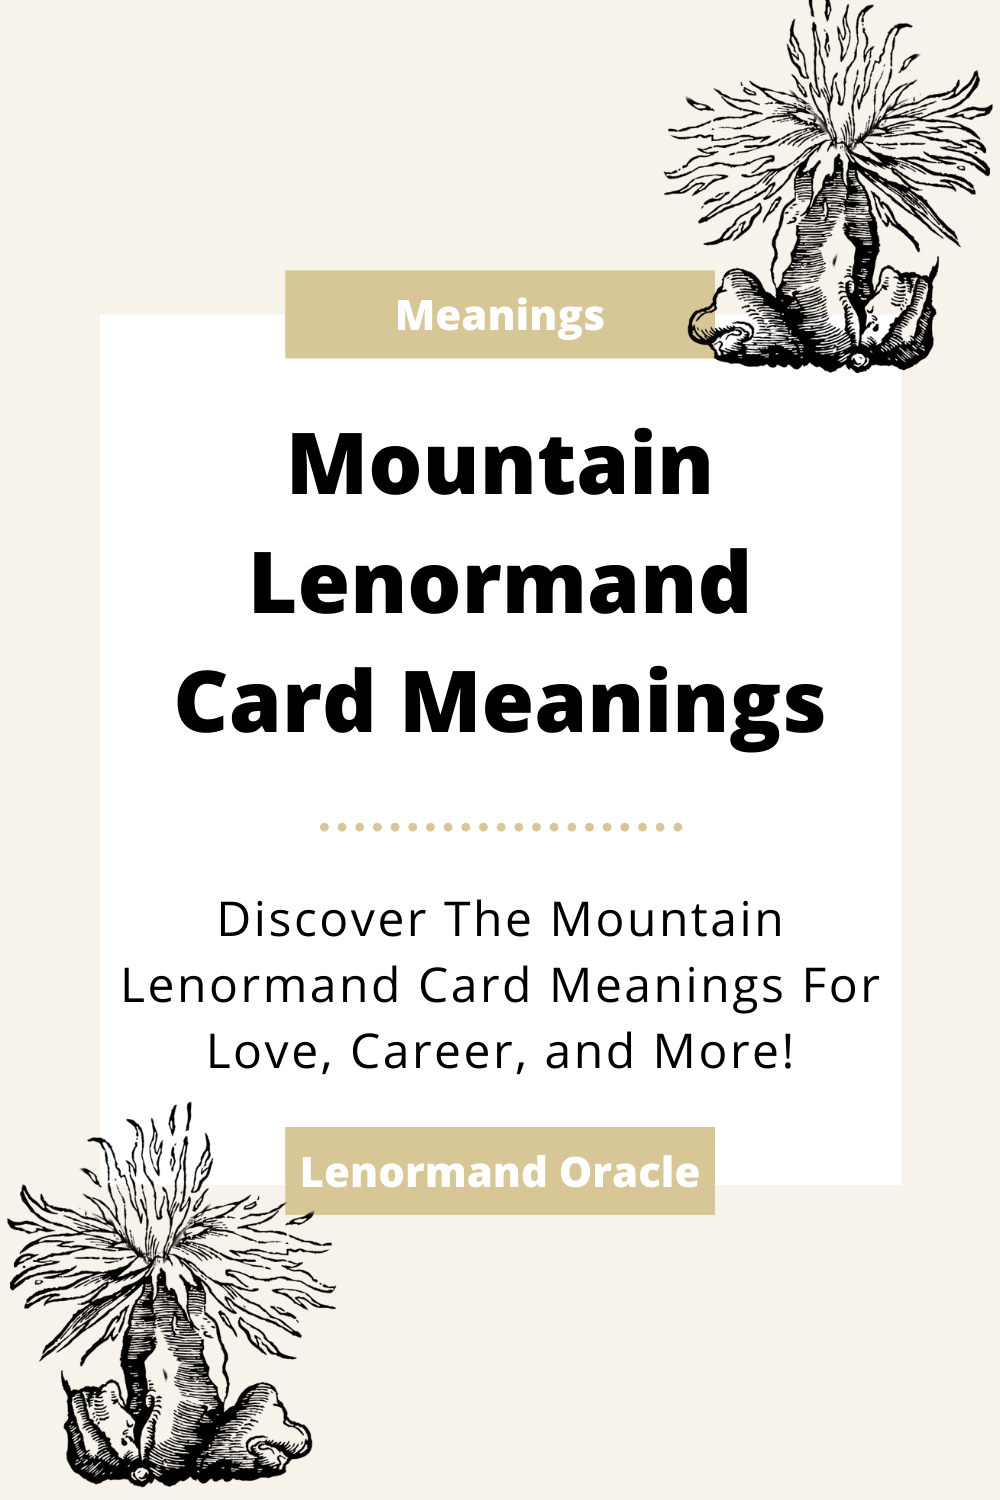 Learn the beginner Mountain Lenormand Card meanings for general readings, love, business, career and more! Learn the good and bad aspects of the Mountain. Mountain predicts obstacles